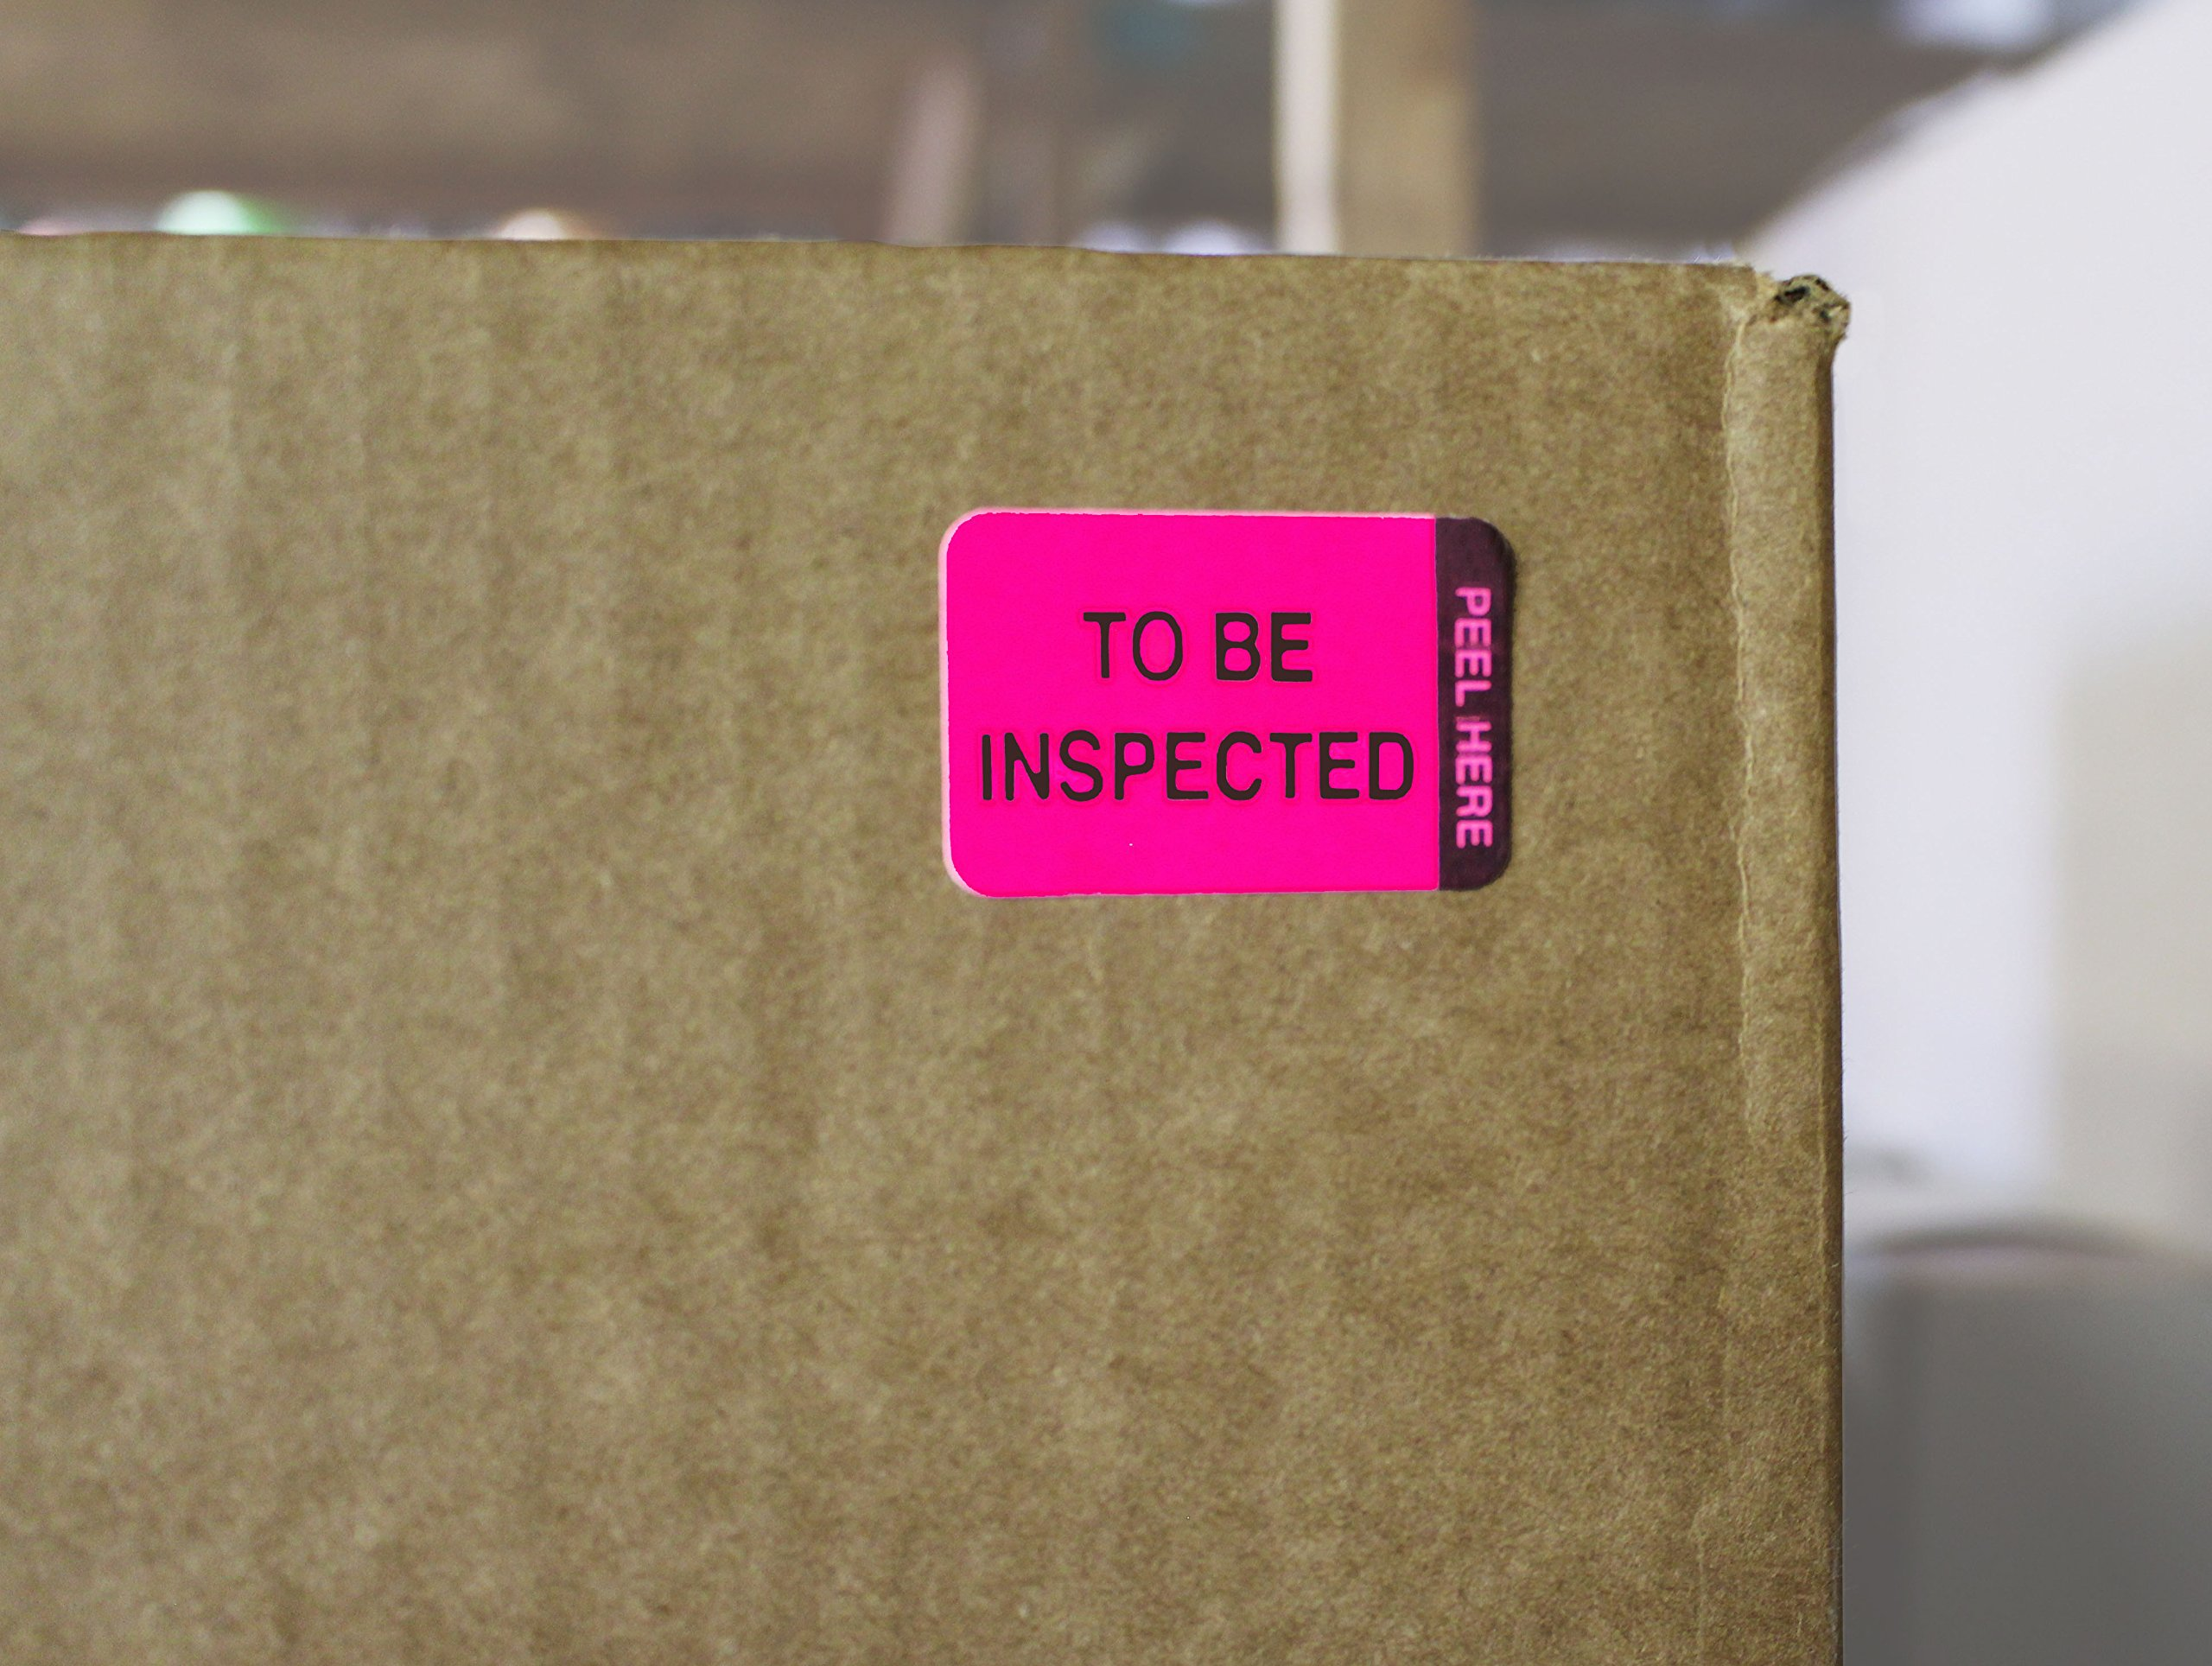 ChromaLabel 1 x 1-1/2 inch Fluorescent Pink/Yellow Double Layer QC Label | 'To Be Inspected/Inspected' Imprint | 250/Dispenser Box by ChromaLabel (Image #3)